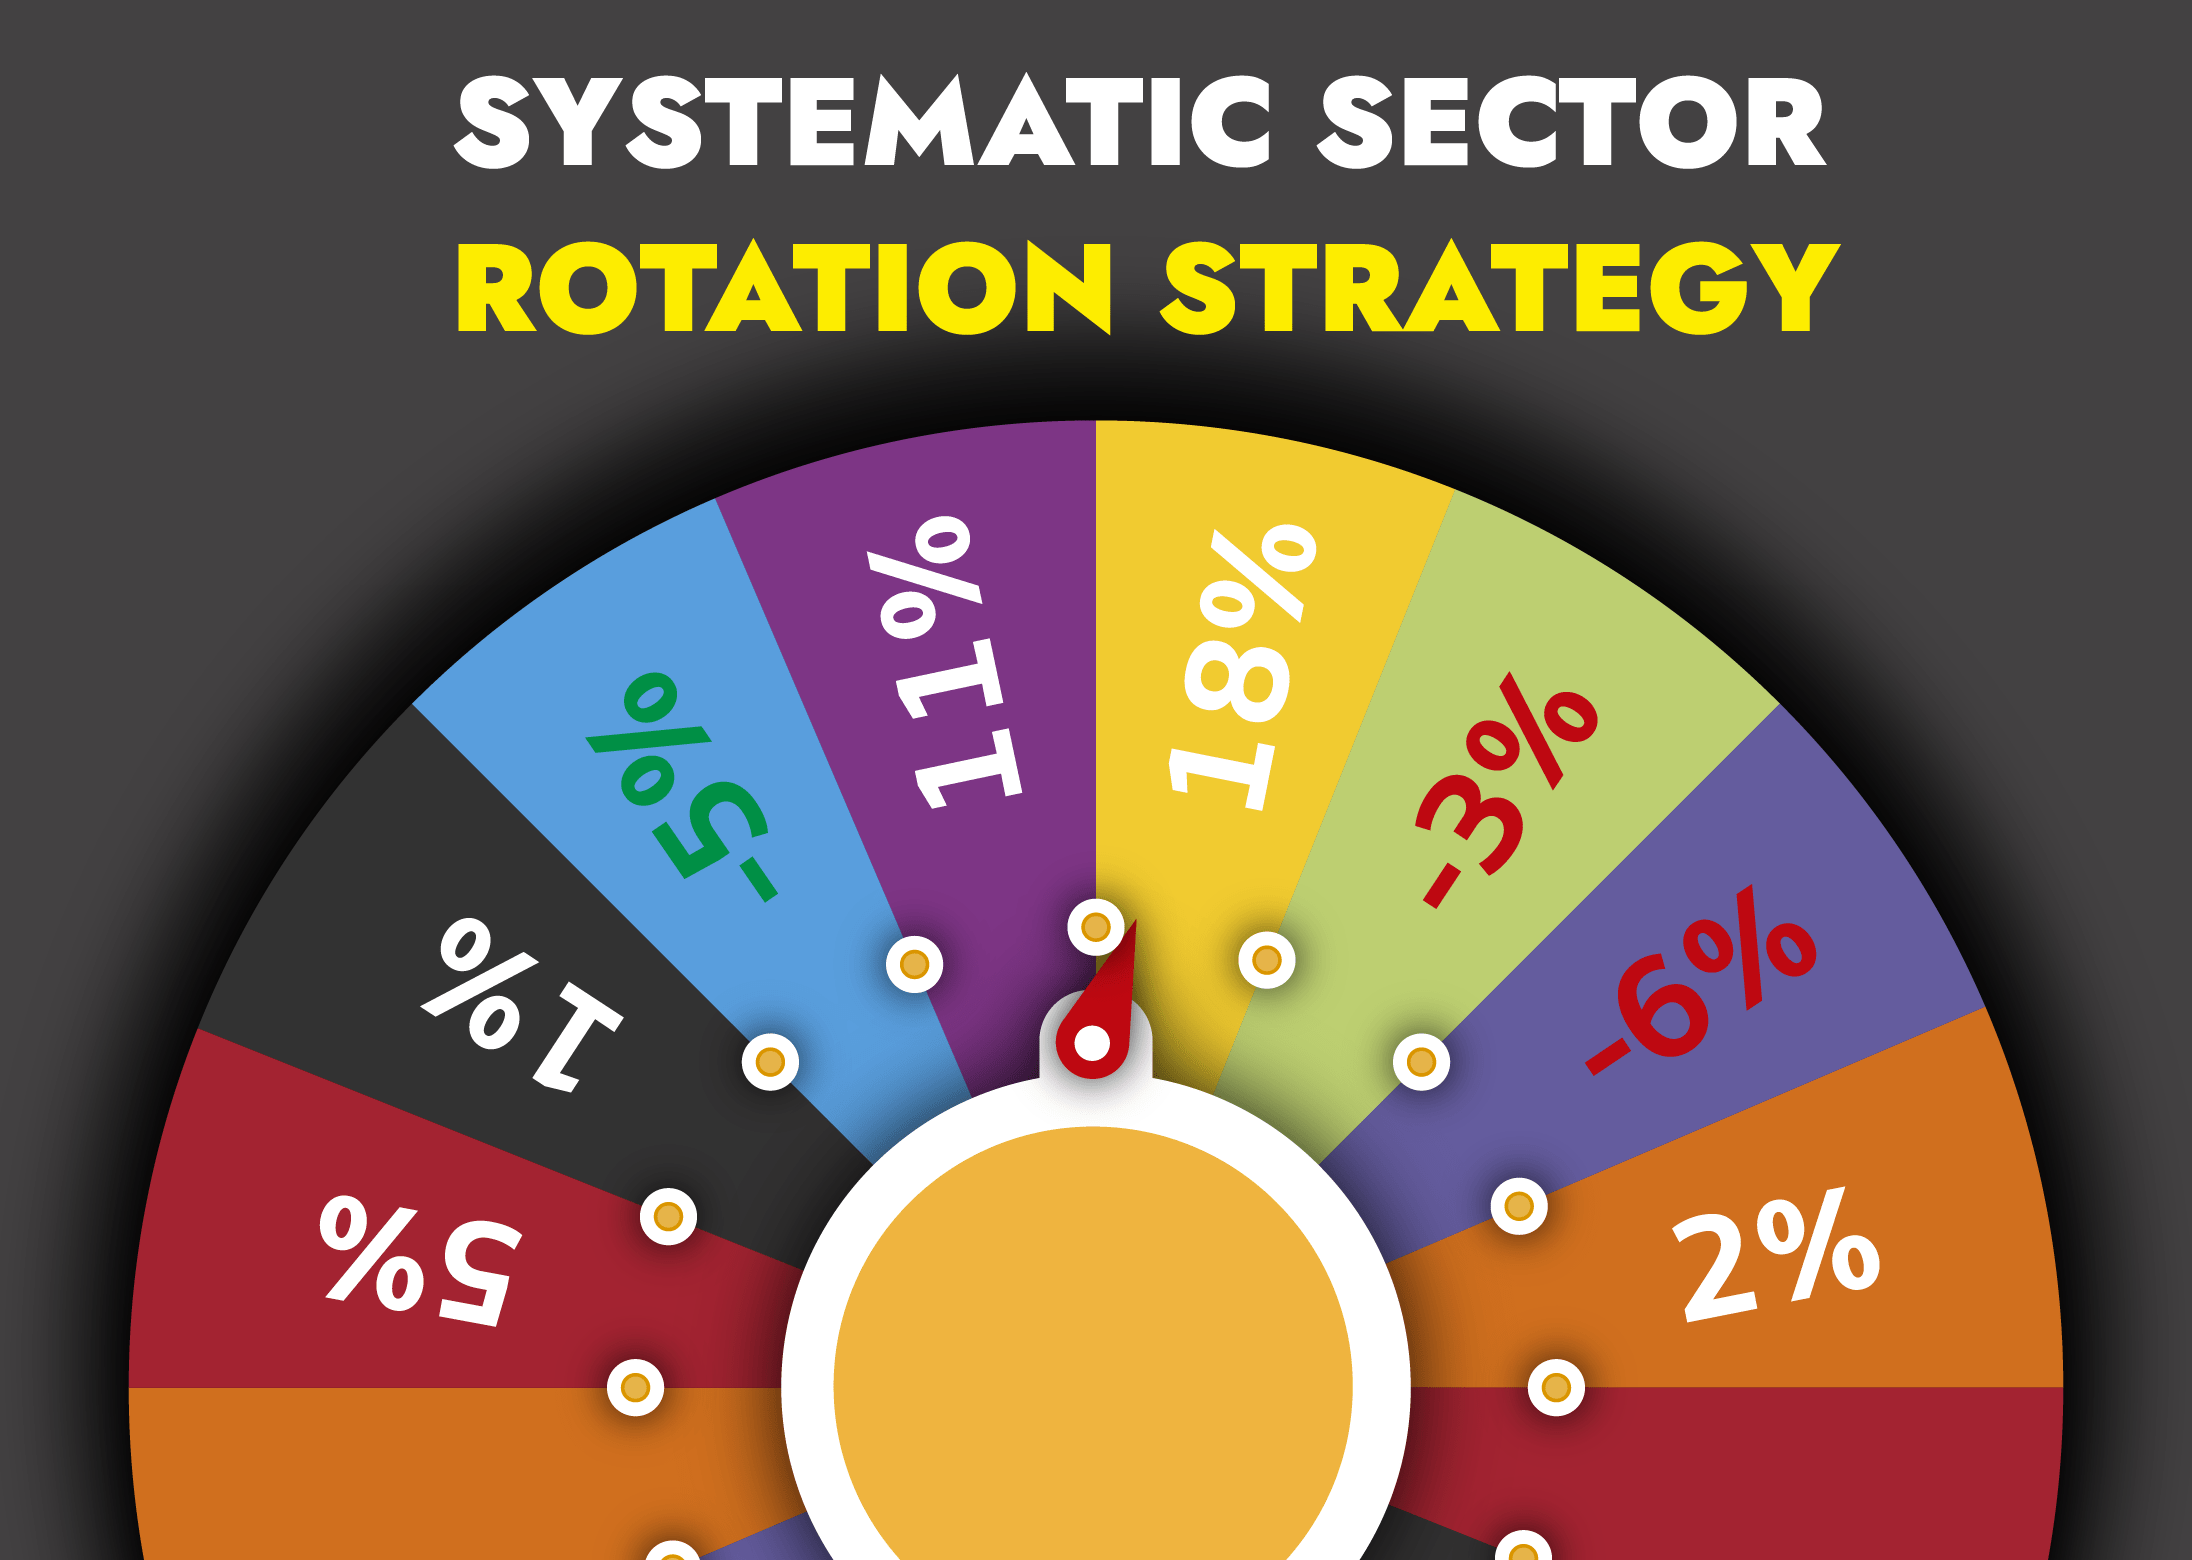 Systematic sector rotation